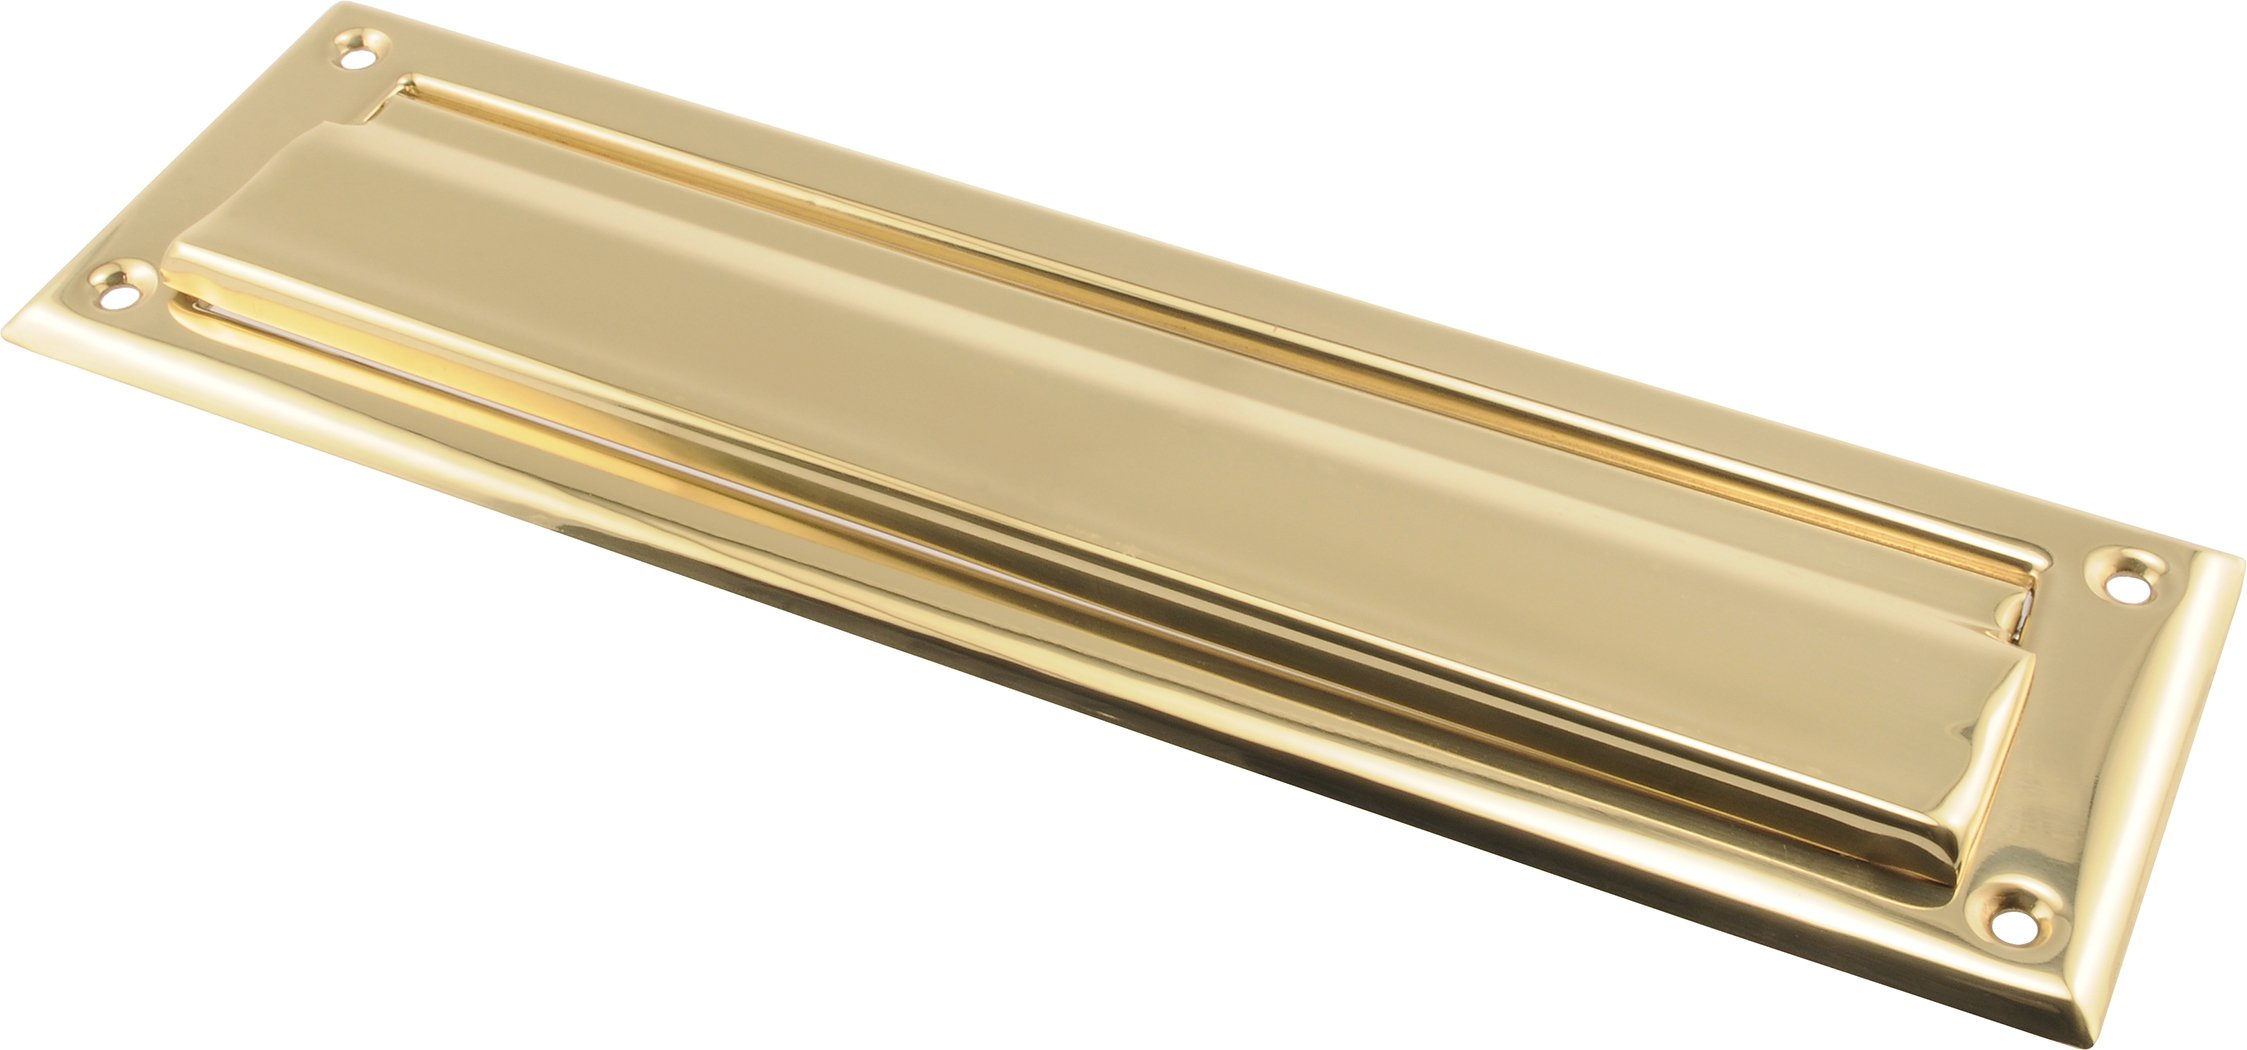 The Hillman Group The Hillman Group 852390 2 x 11'' Mail Slot- Solid Brass - Bright Brass Finish 1-Pack